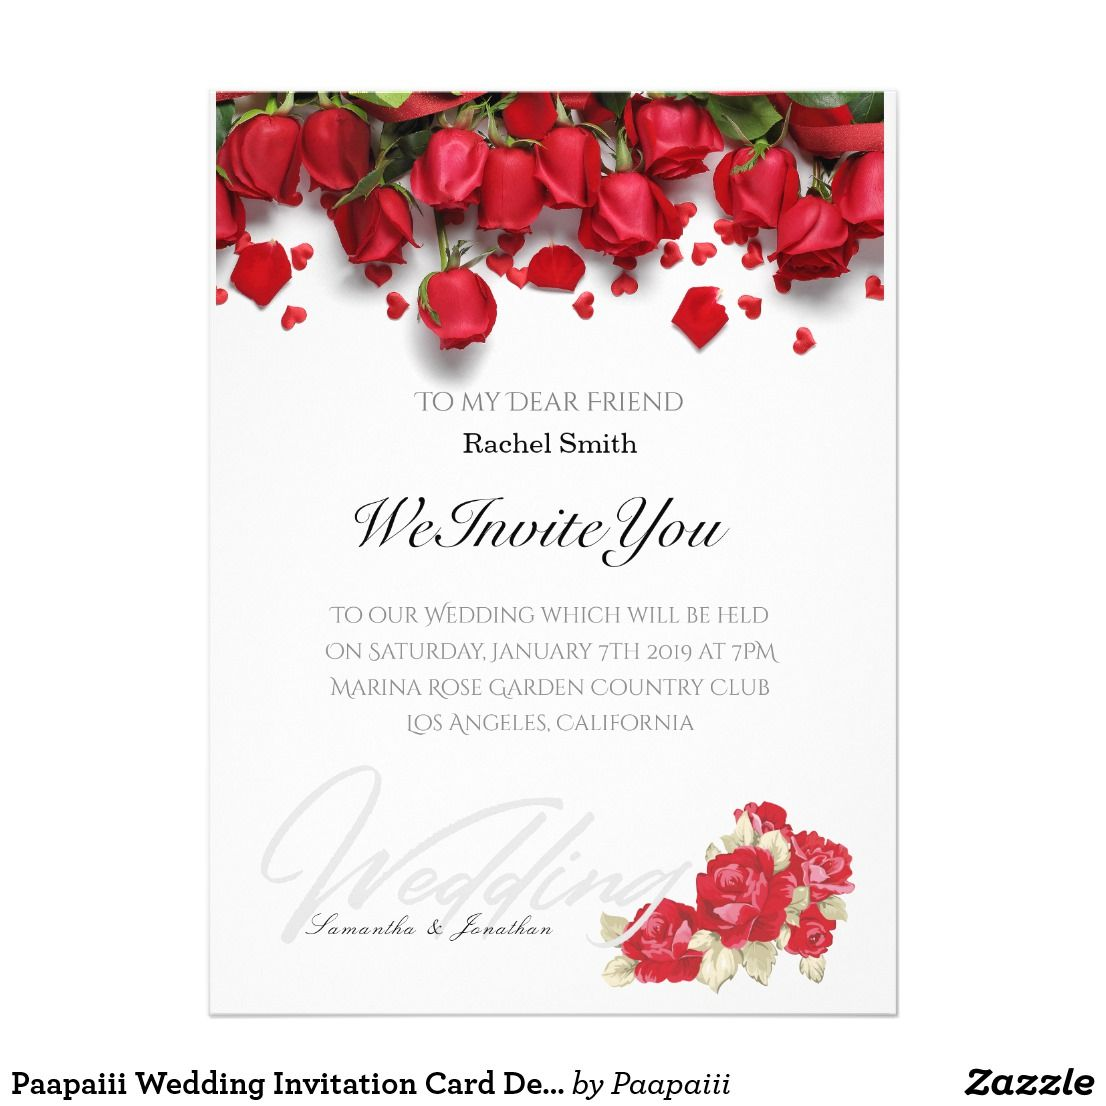 Paapaiii Wedding Invitation Card Design Zazzle Com Wedding